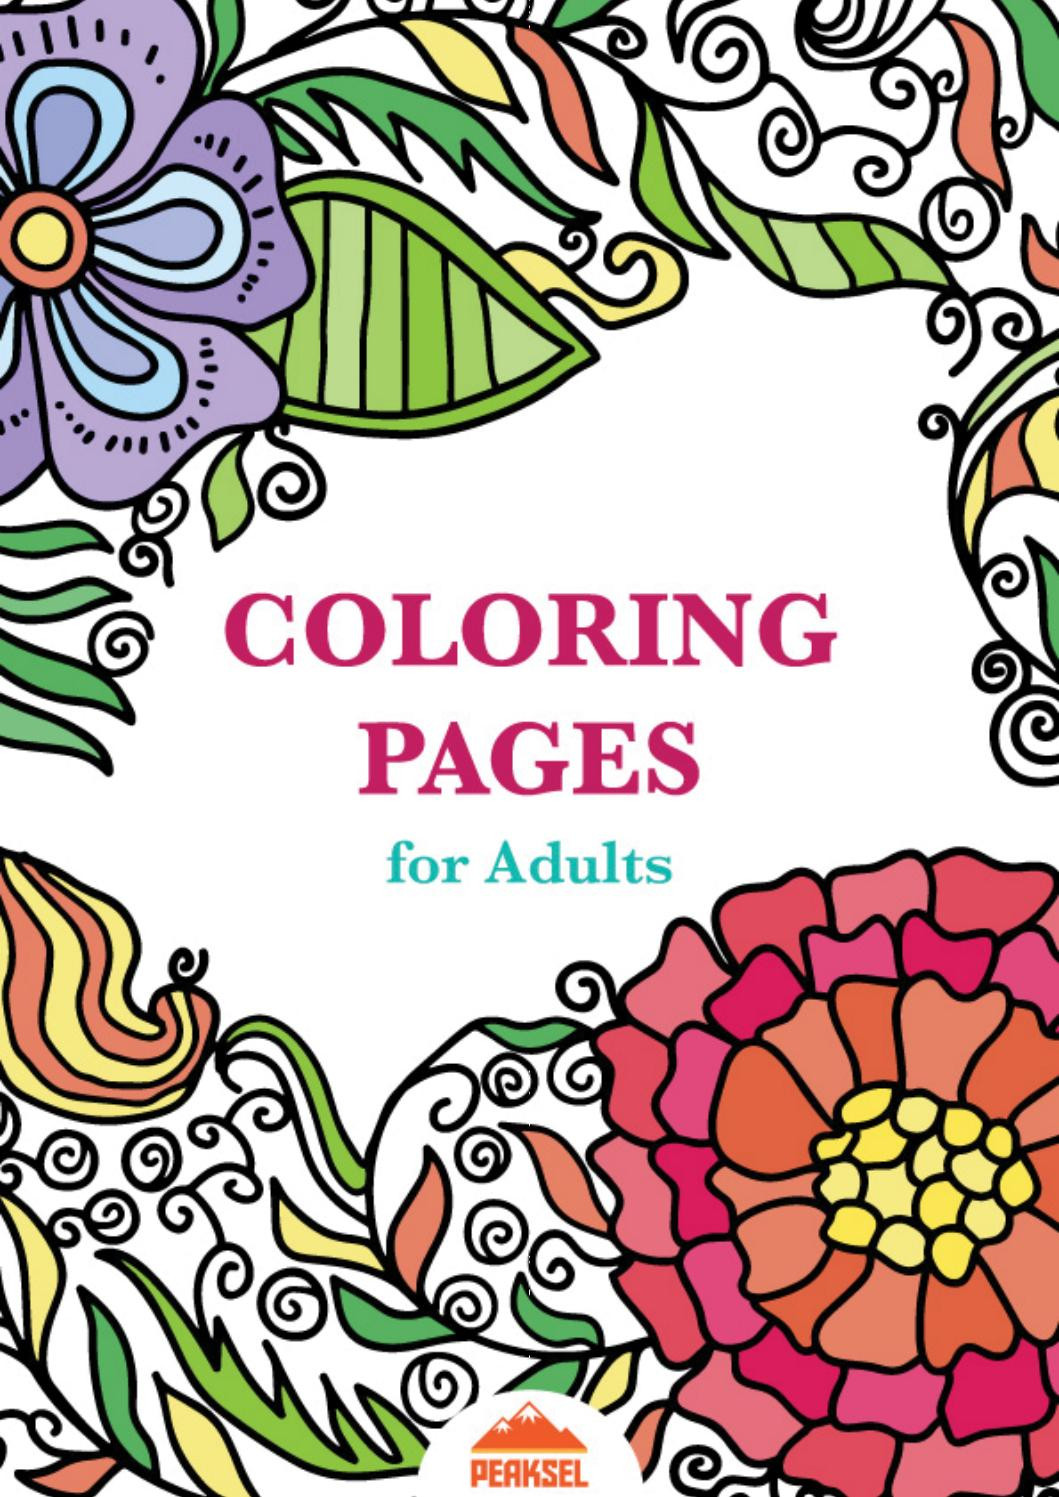 Coloring Book For Kids Pdf  Coloring Pages for Adults Free Adult Coloring Book by